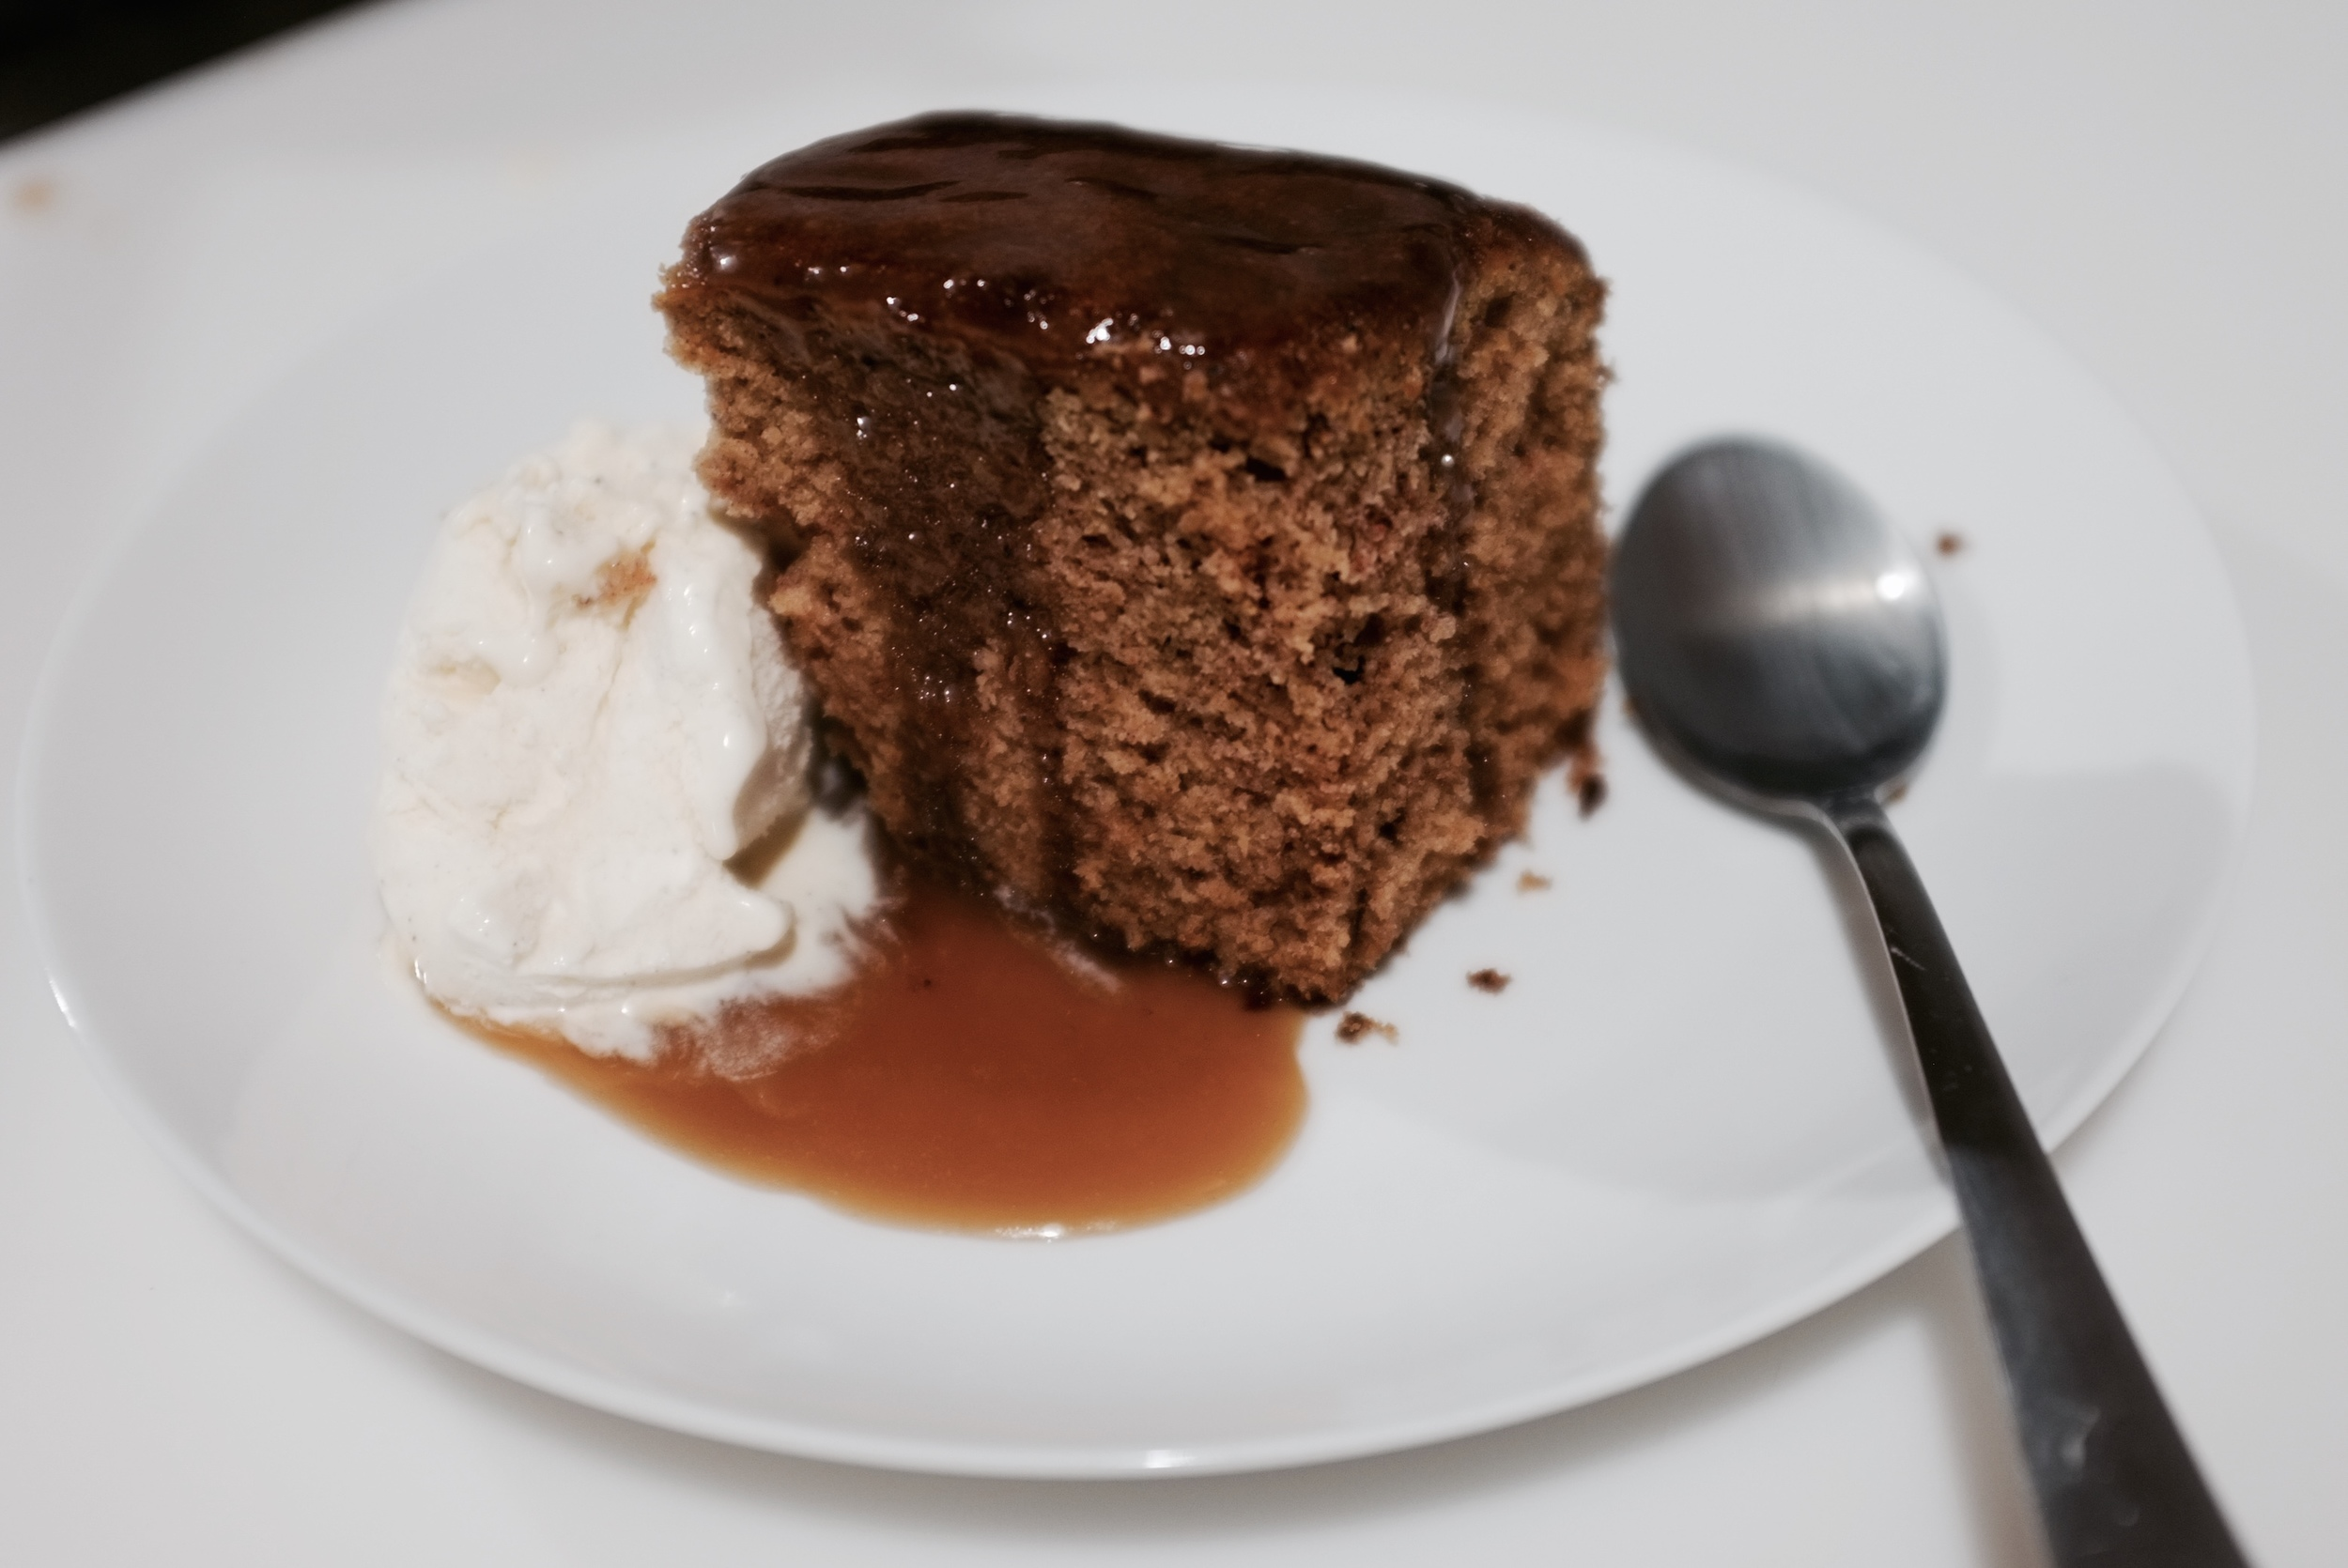 Beet-Filled Sticky Toffee Pudding Recipe